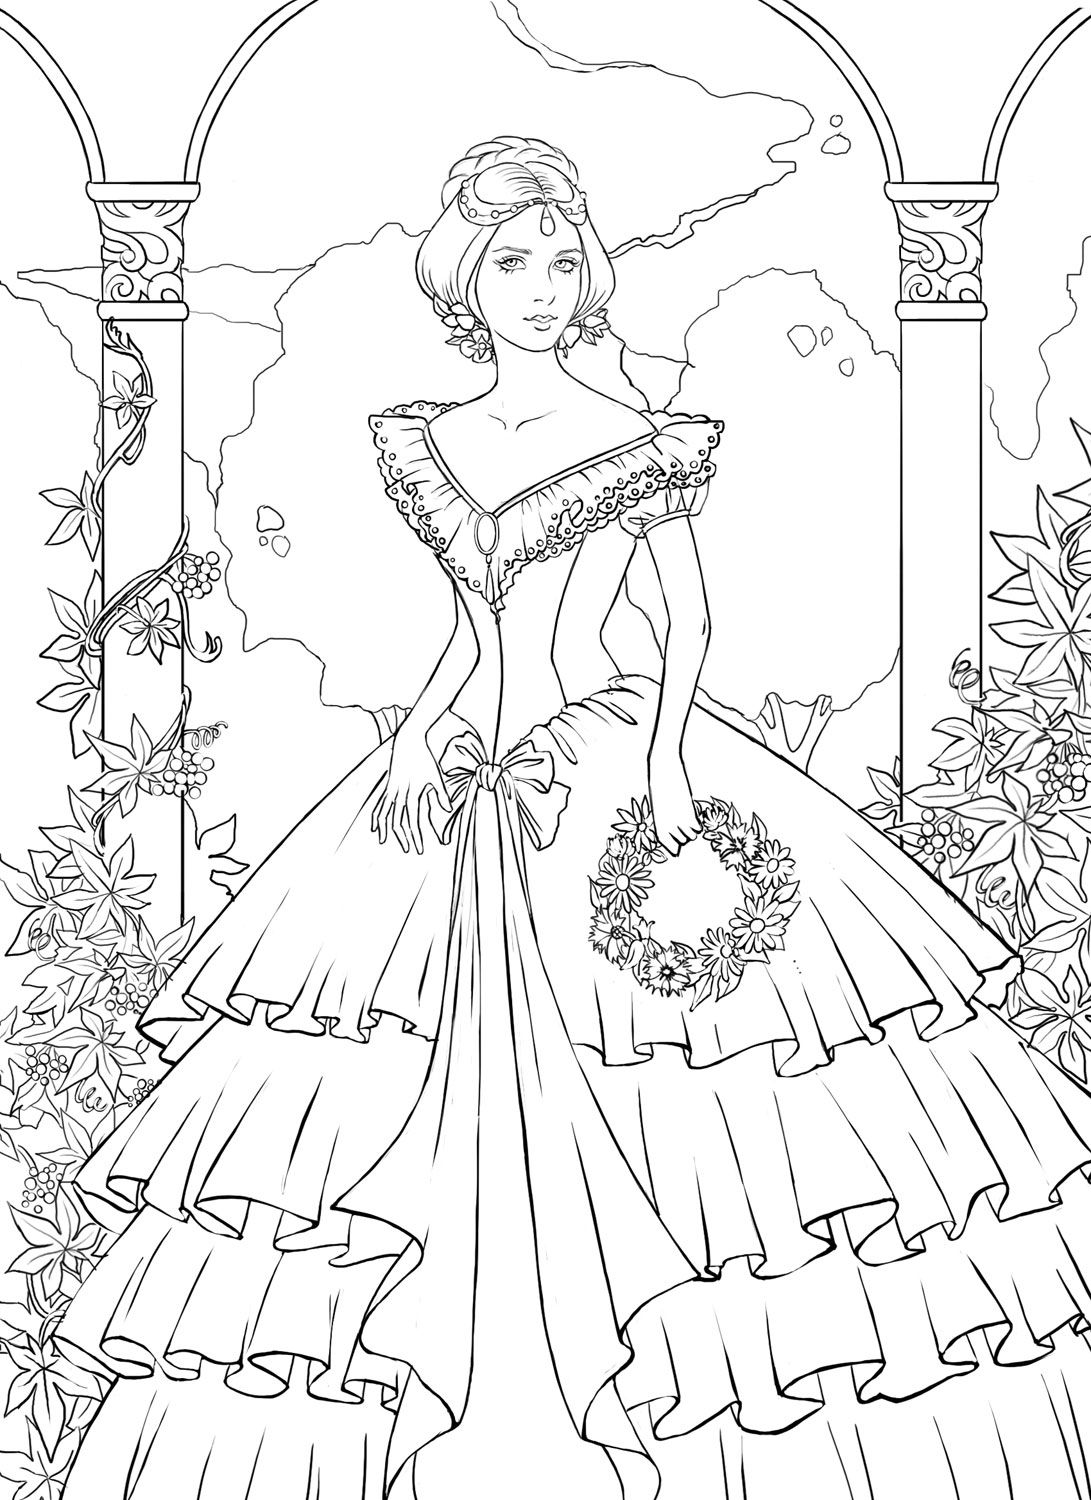 detailed landscape coloring pages for adults coloring online - Landscape Coloring Pages